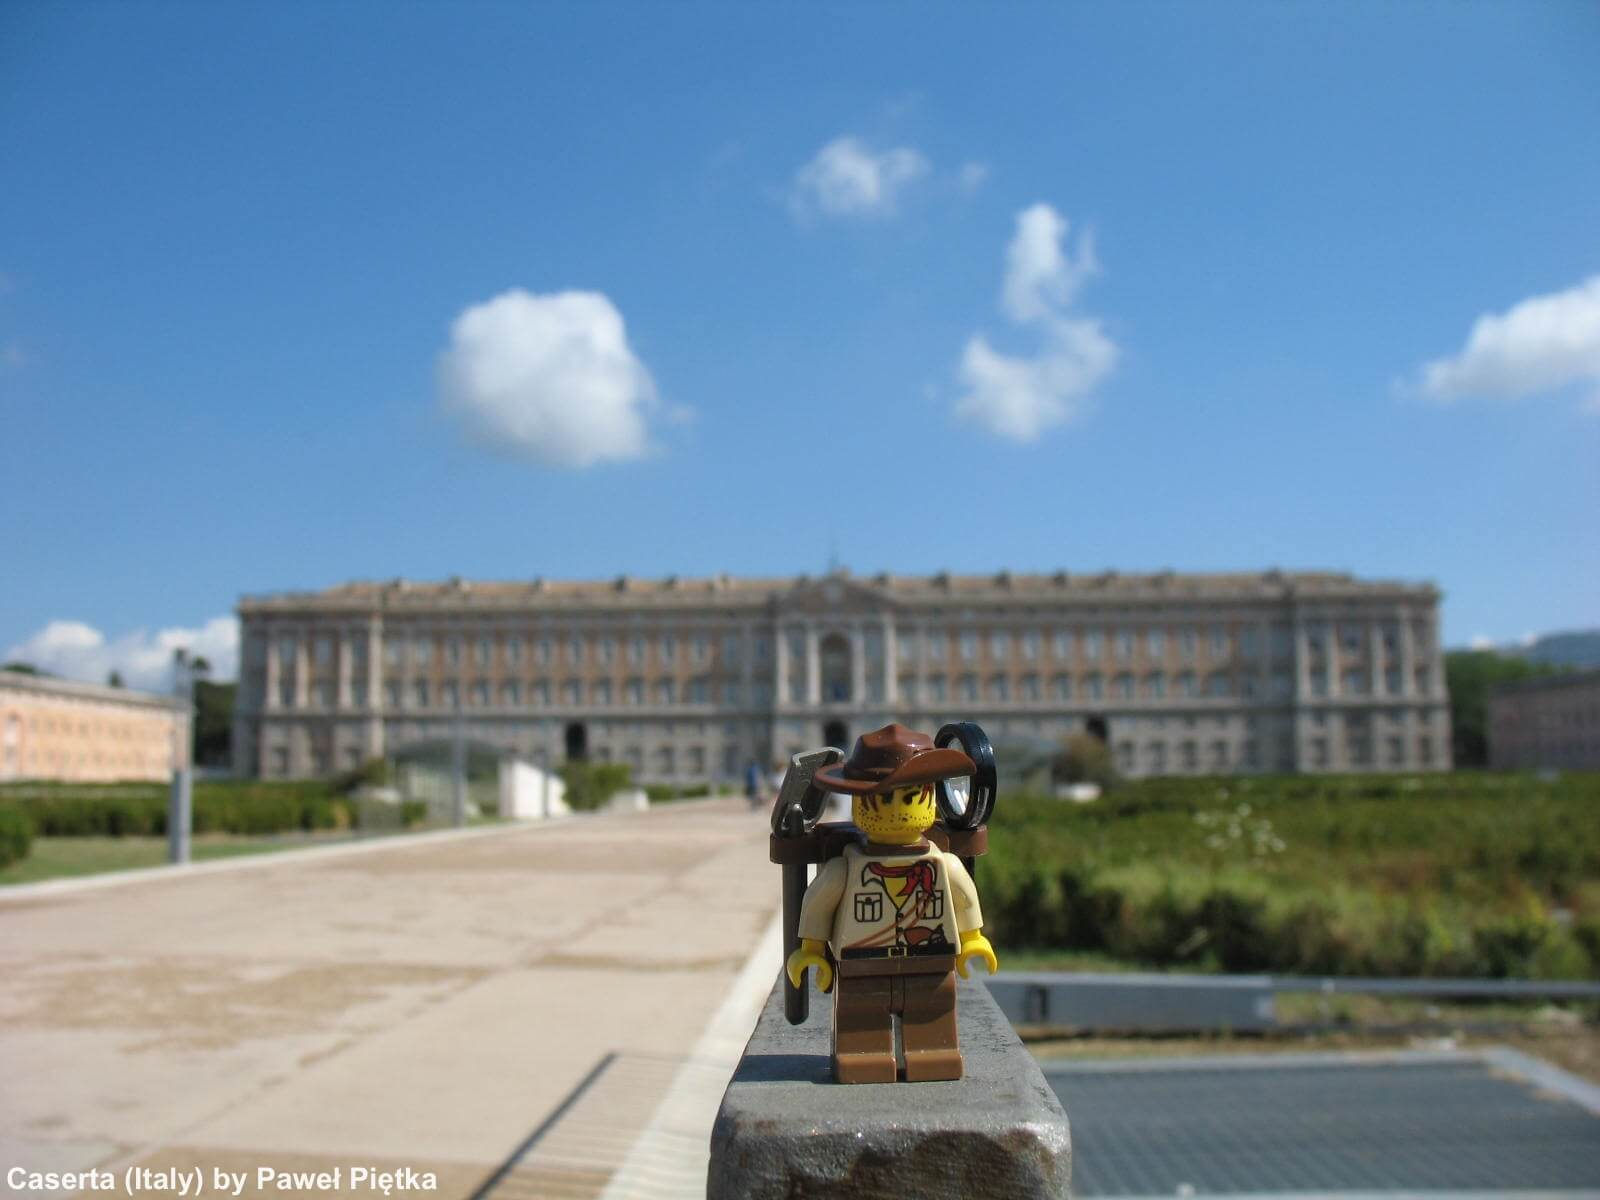 Caserta (Italy) - Royal Palace of Caserta